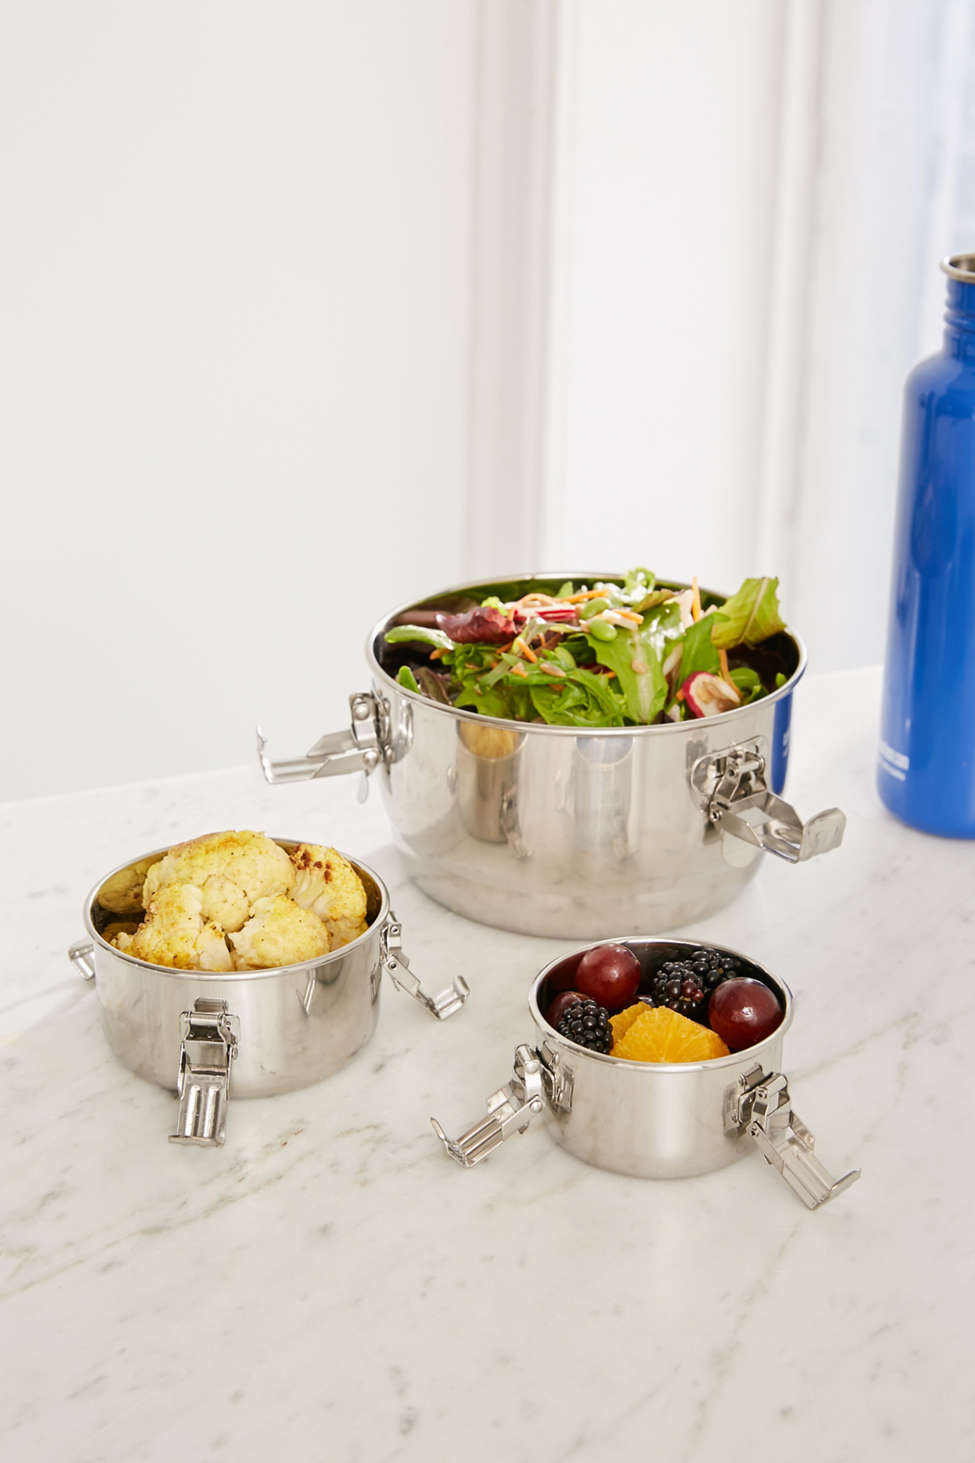 Slide View: 1: Life Without Plastic Stainless Steel Stainless Steel Food Storage Canister